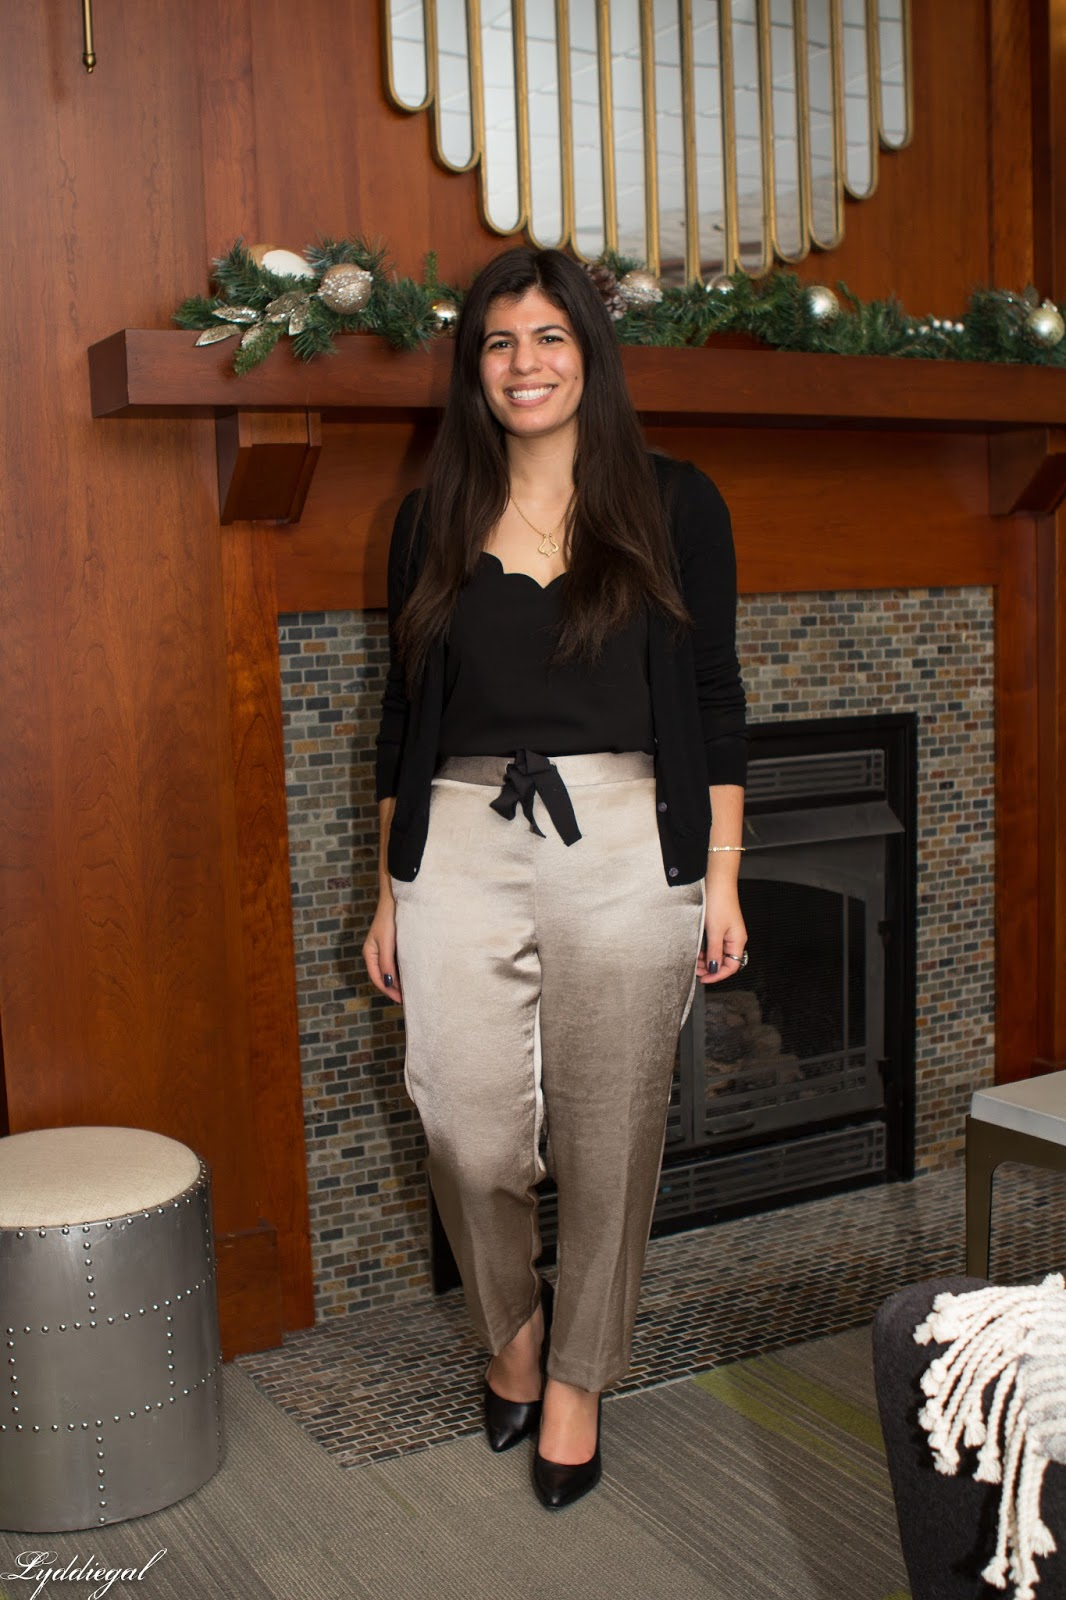 Satin Pants with a scalloped cami and black pumps for a holiday party